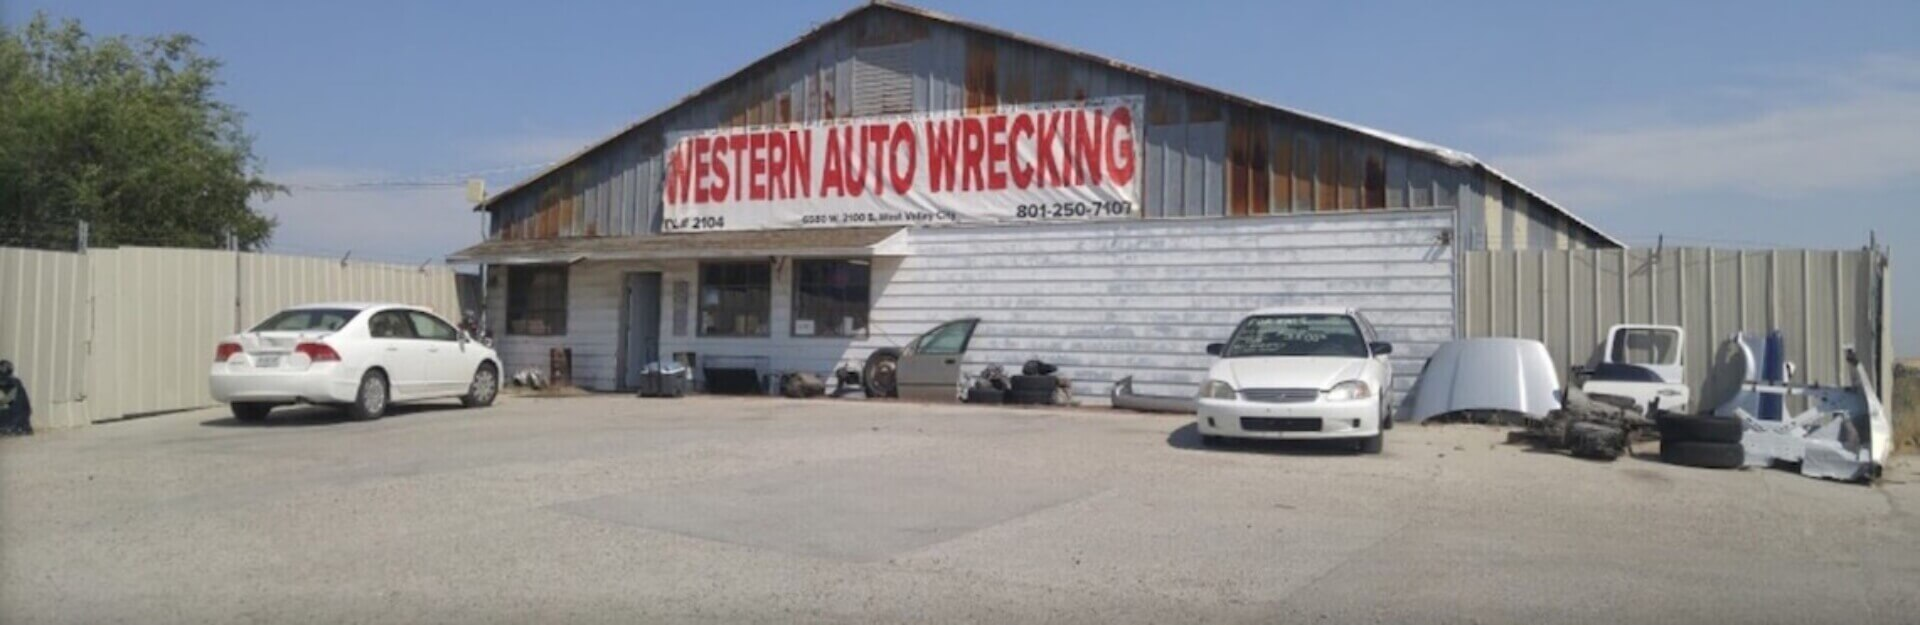 Western-Auto-Wrecking-Used-Car-Parts-Utah-USA